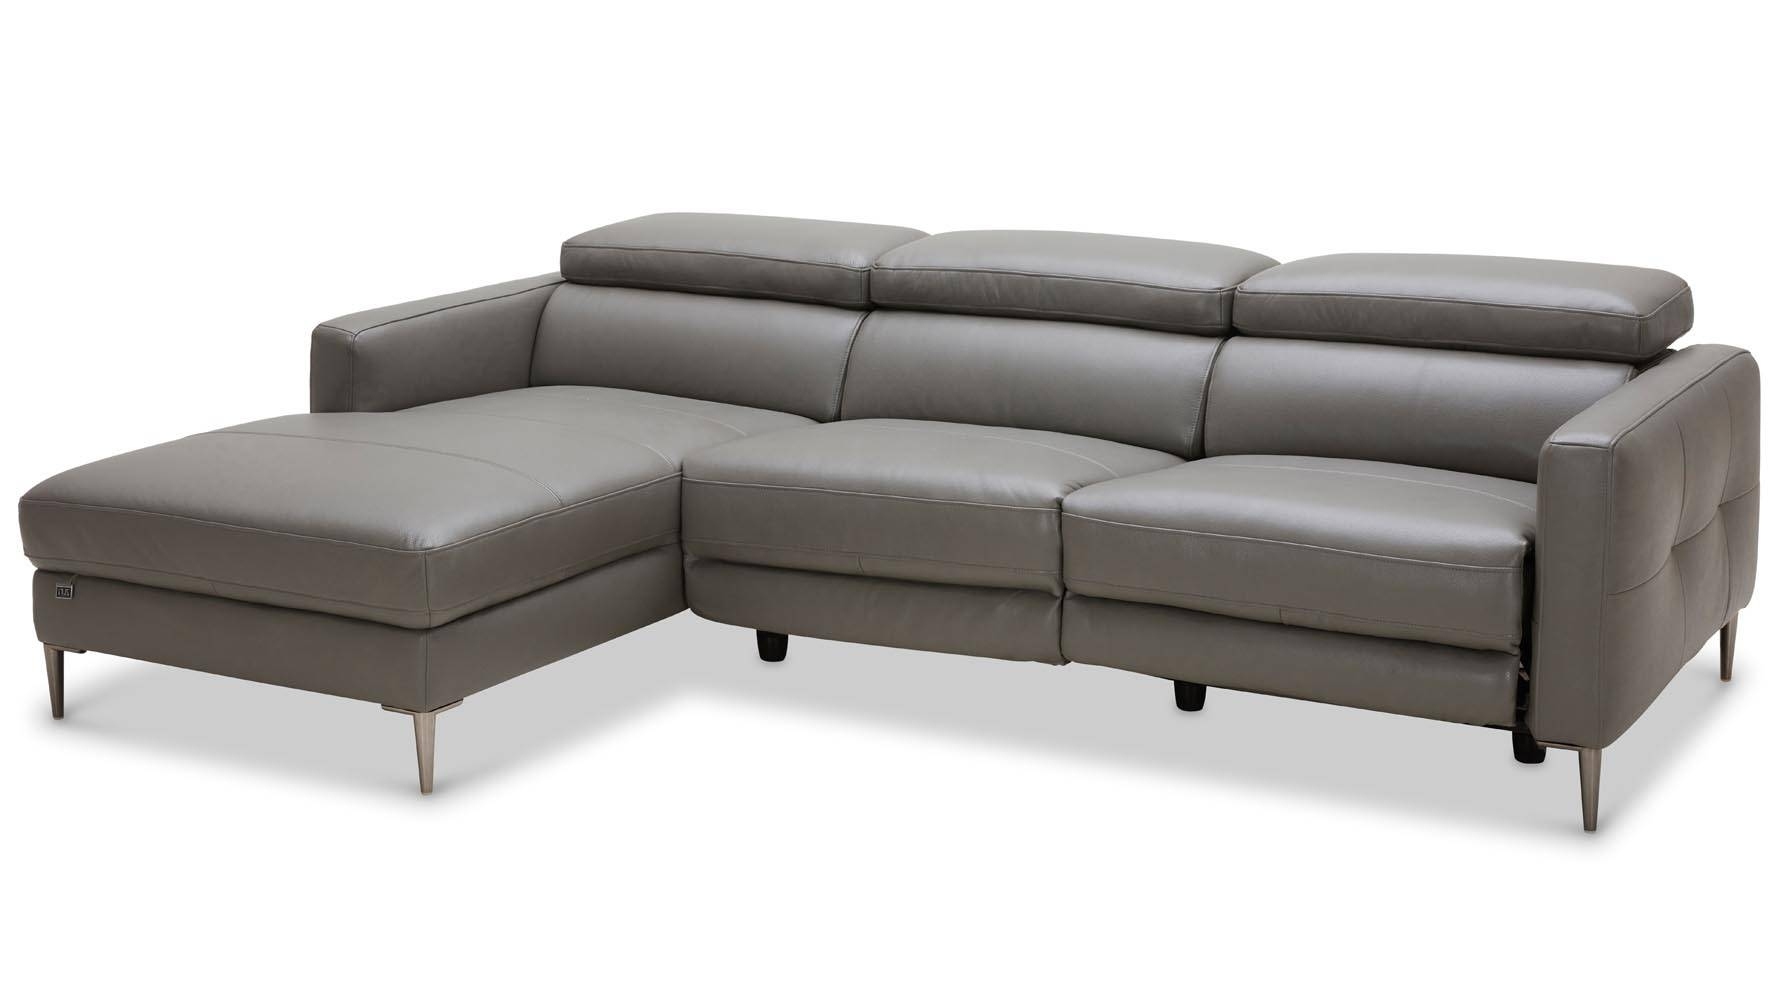 Modern Grey Leather Reno Sectional With Power Recliner Seat | Zuri within Modern 3 Seater Sofas (Image 24 of 30)